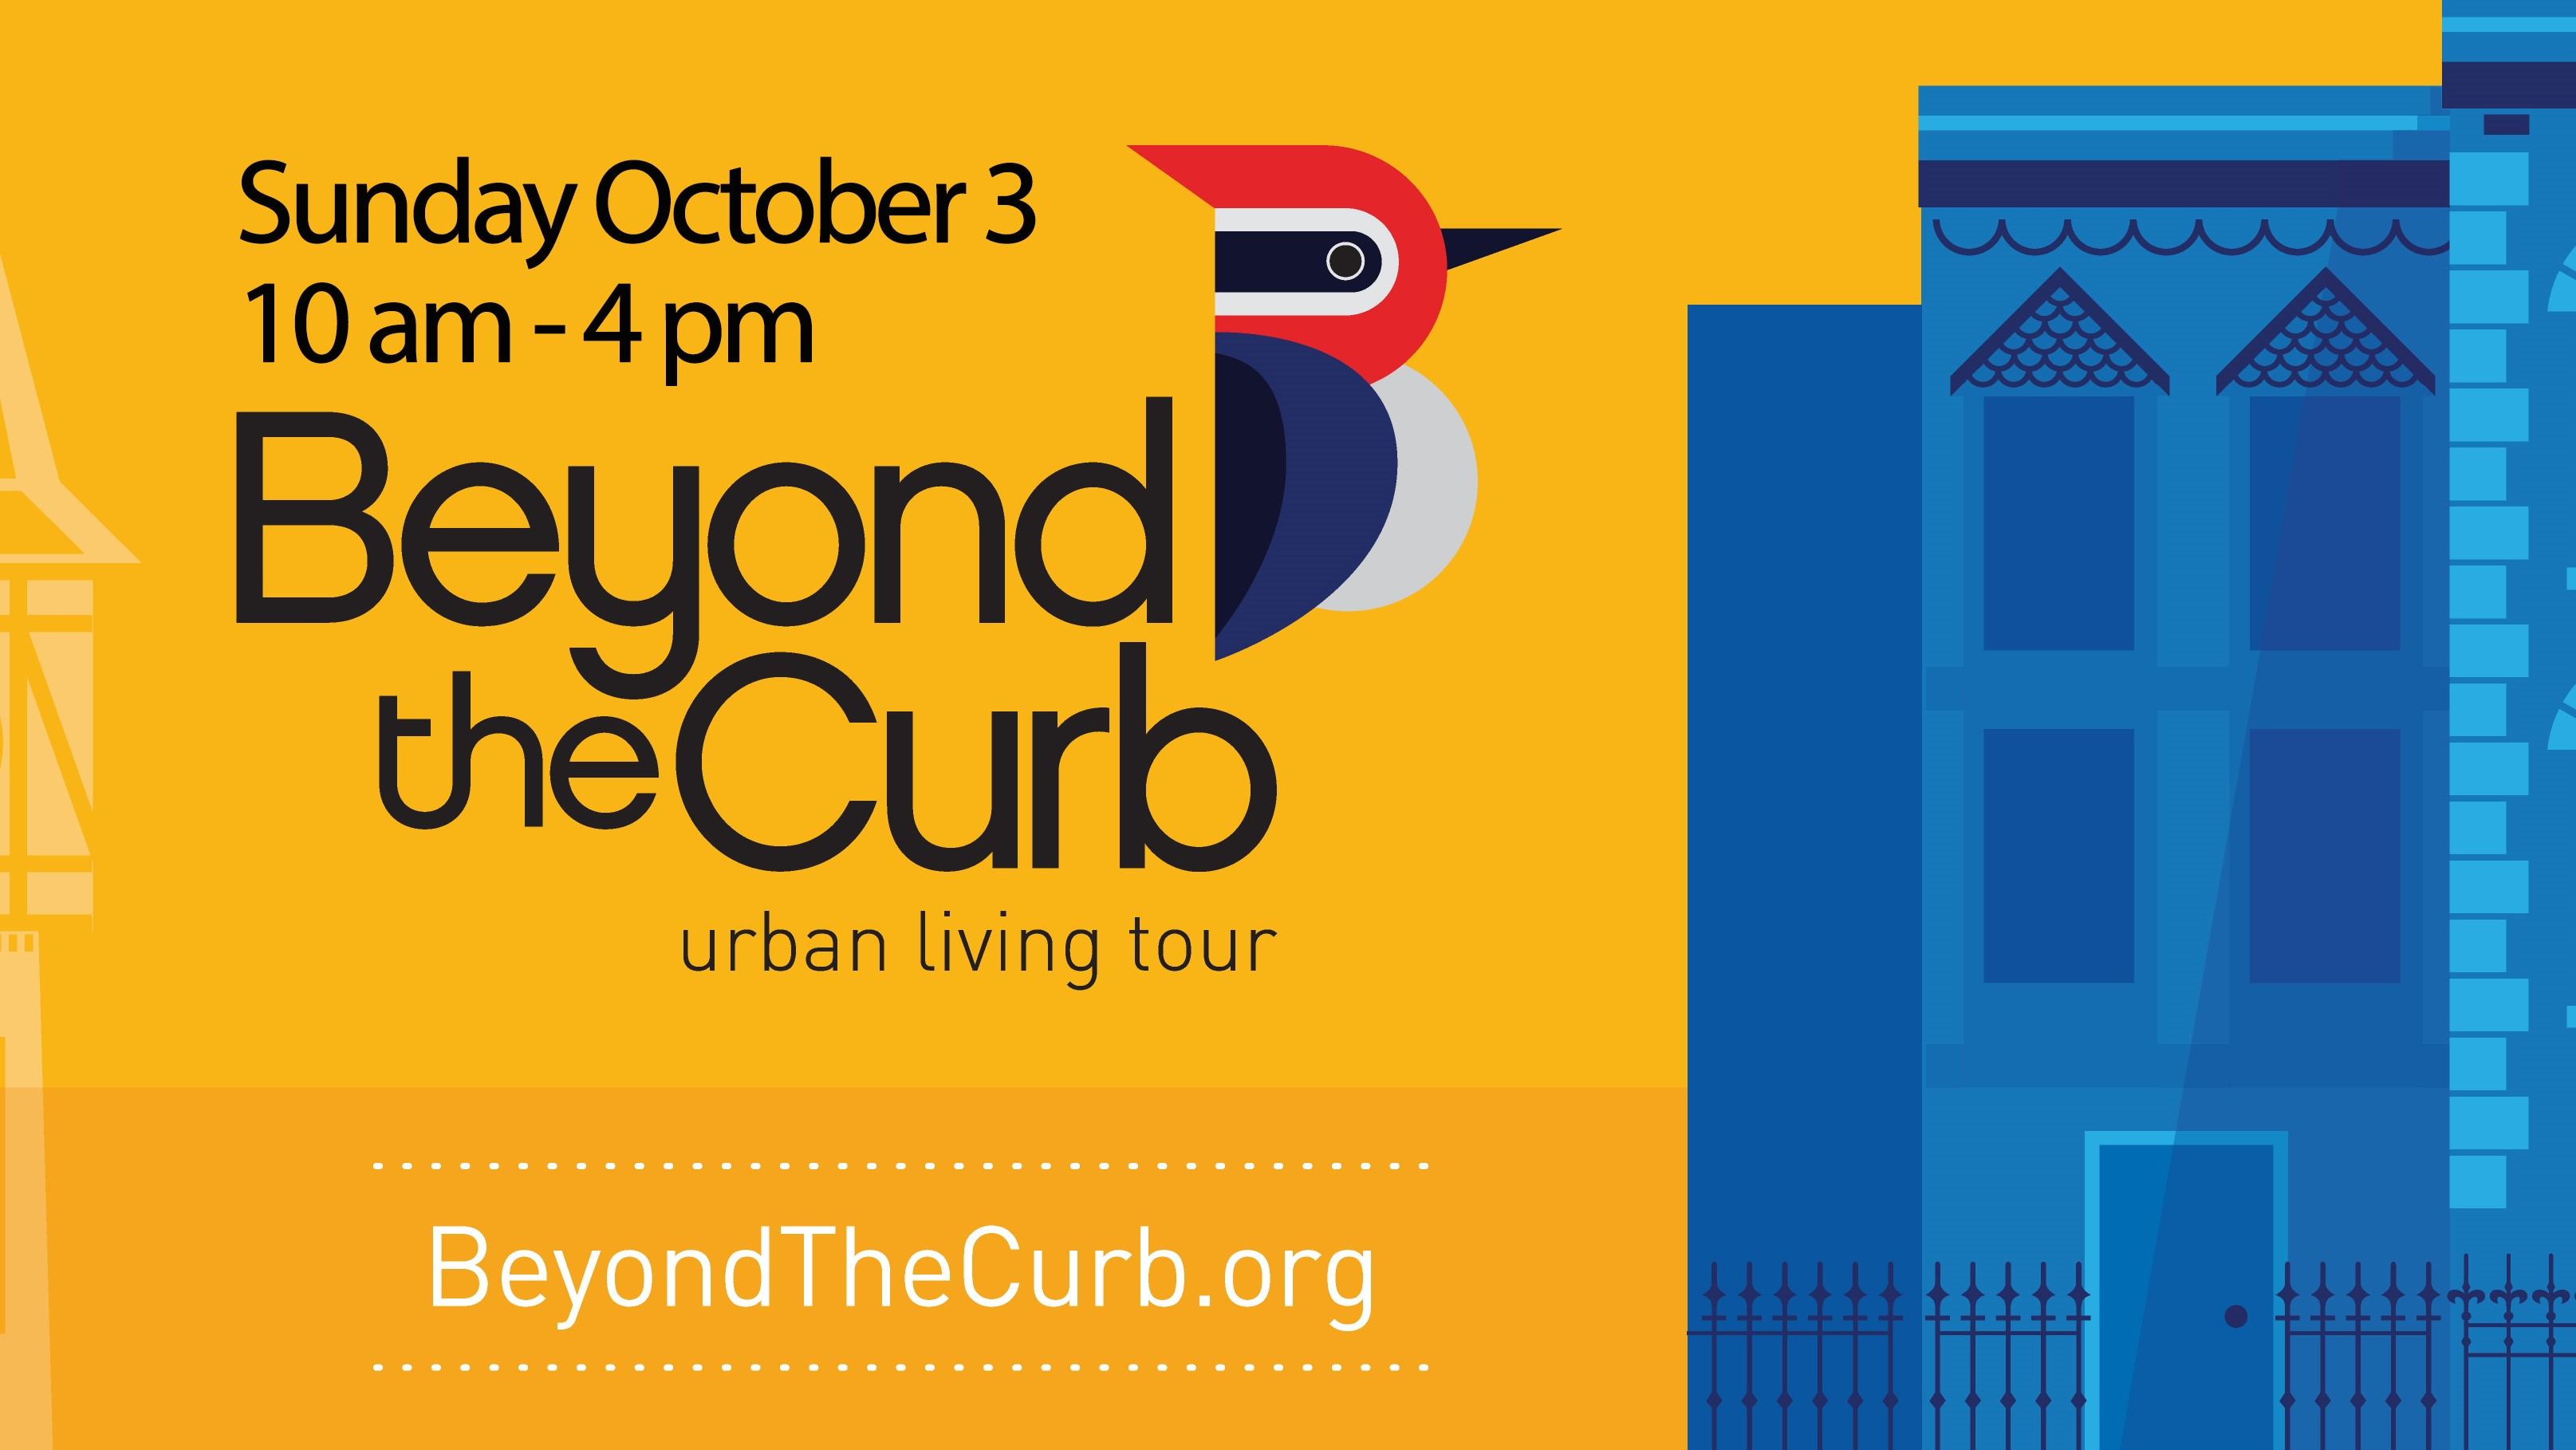 Come beyond the curb on October 3